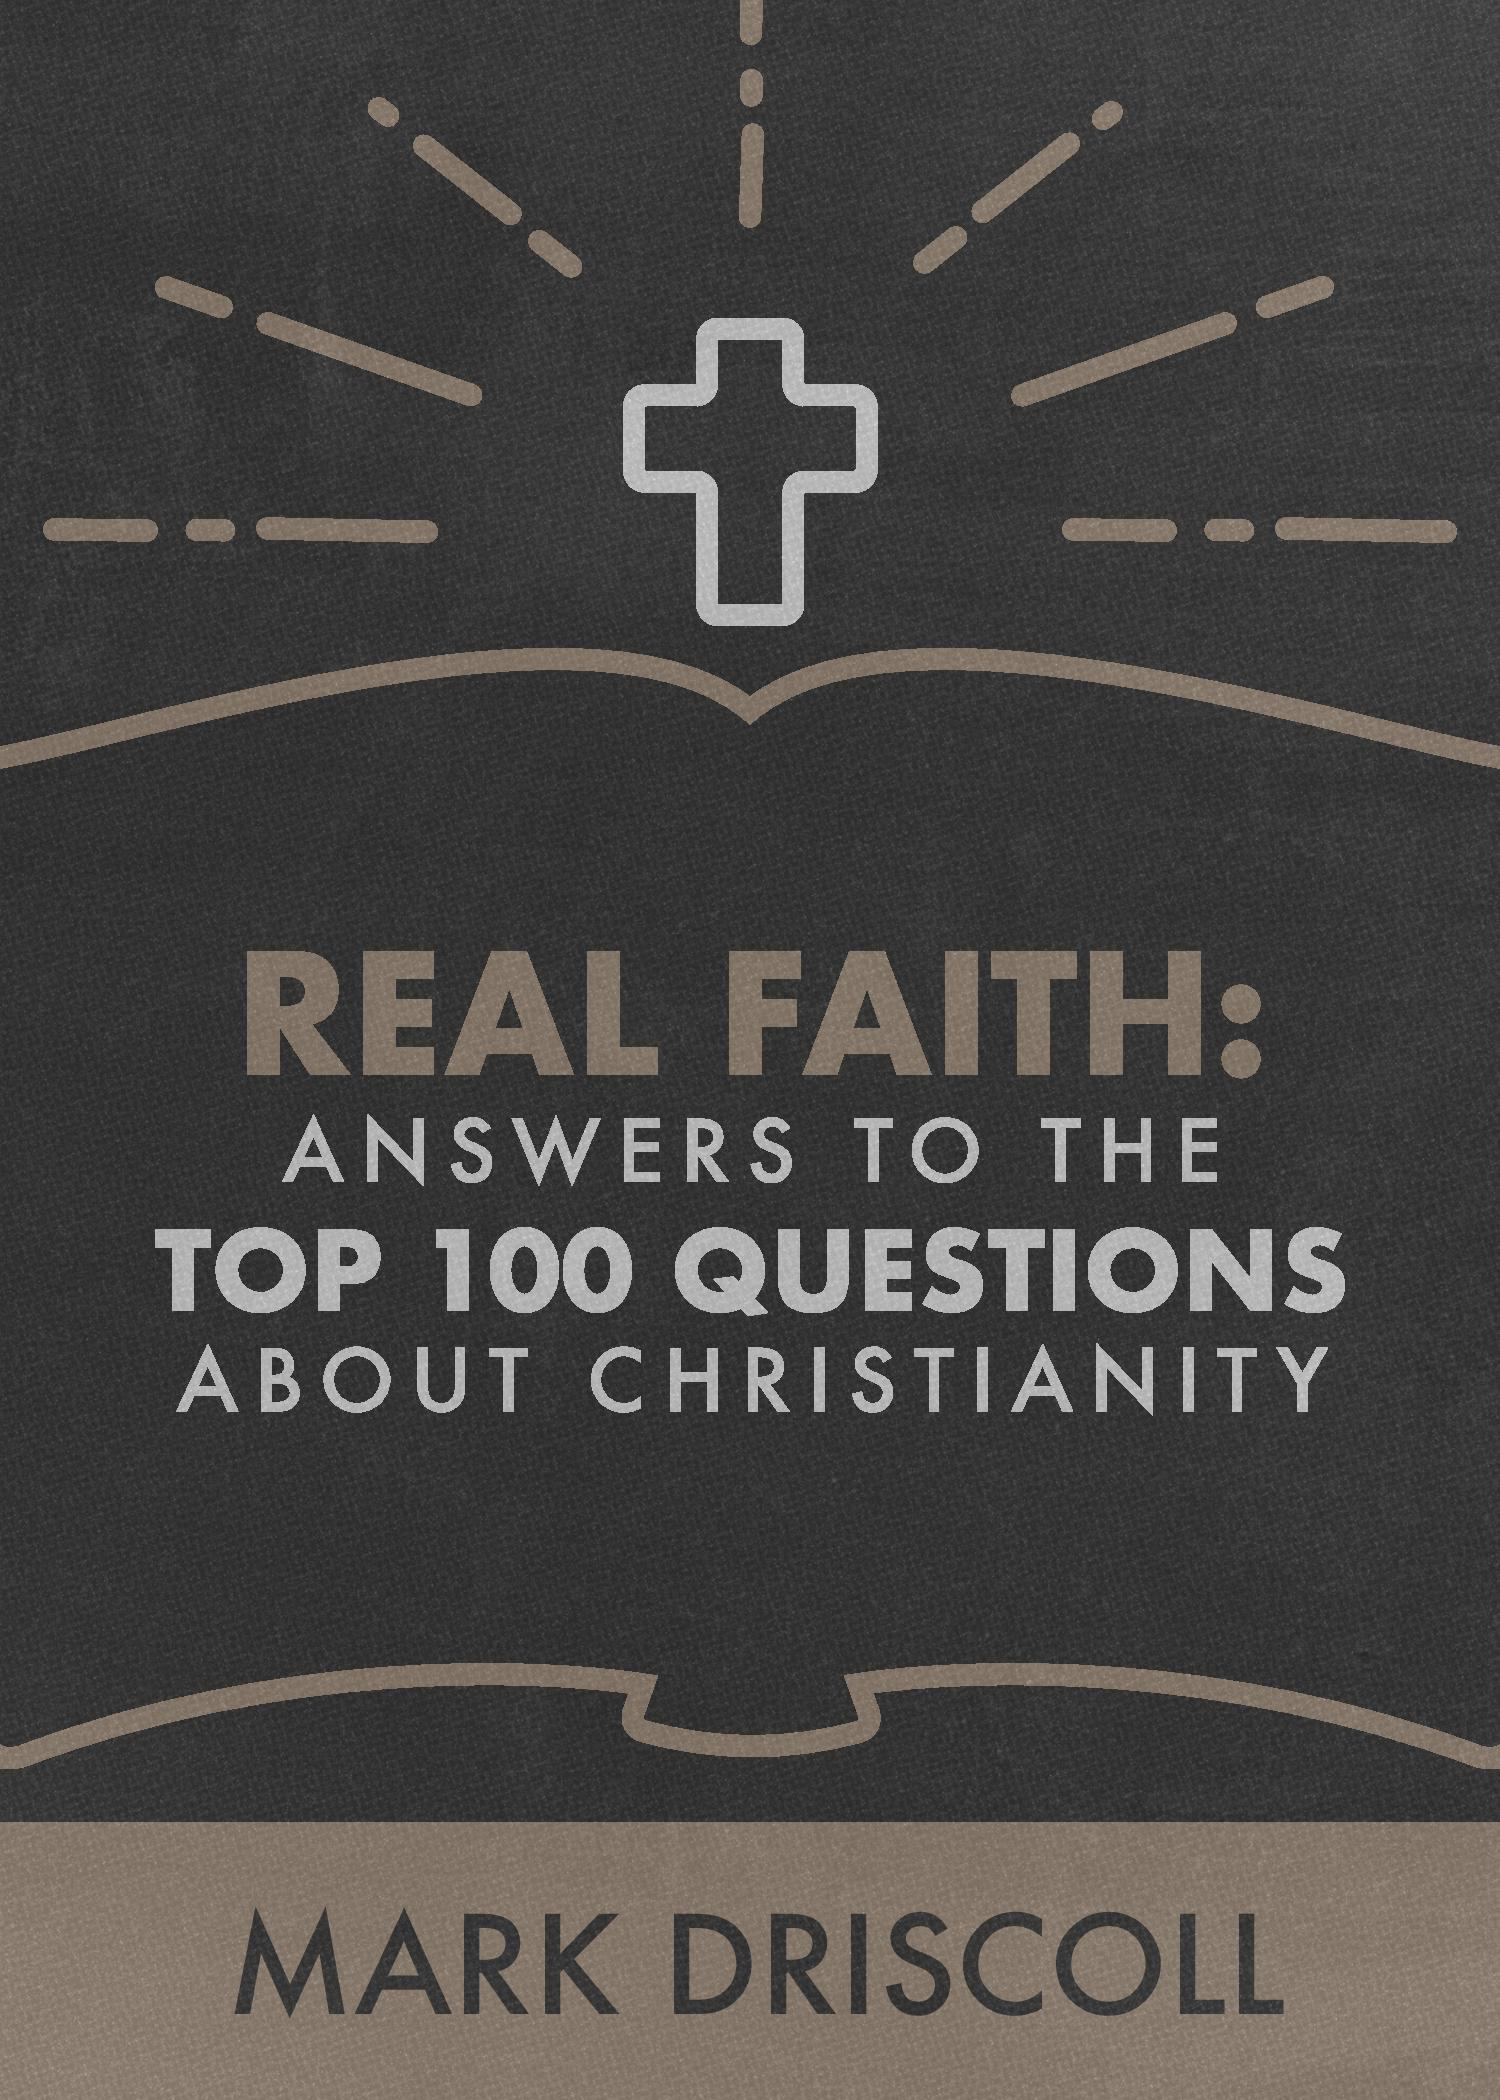 Real Faith: Answers to the Top 100 Questions About Christianity